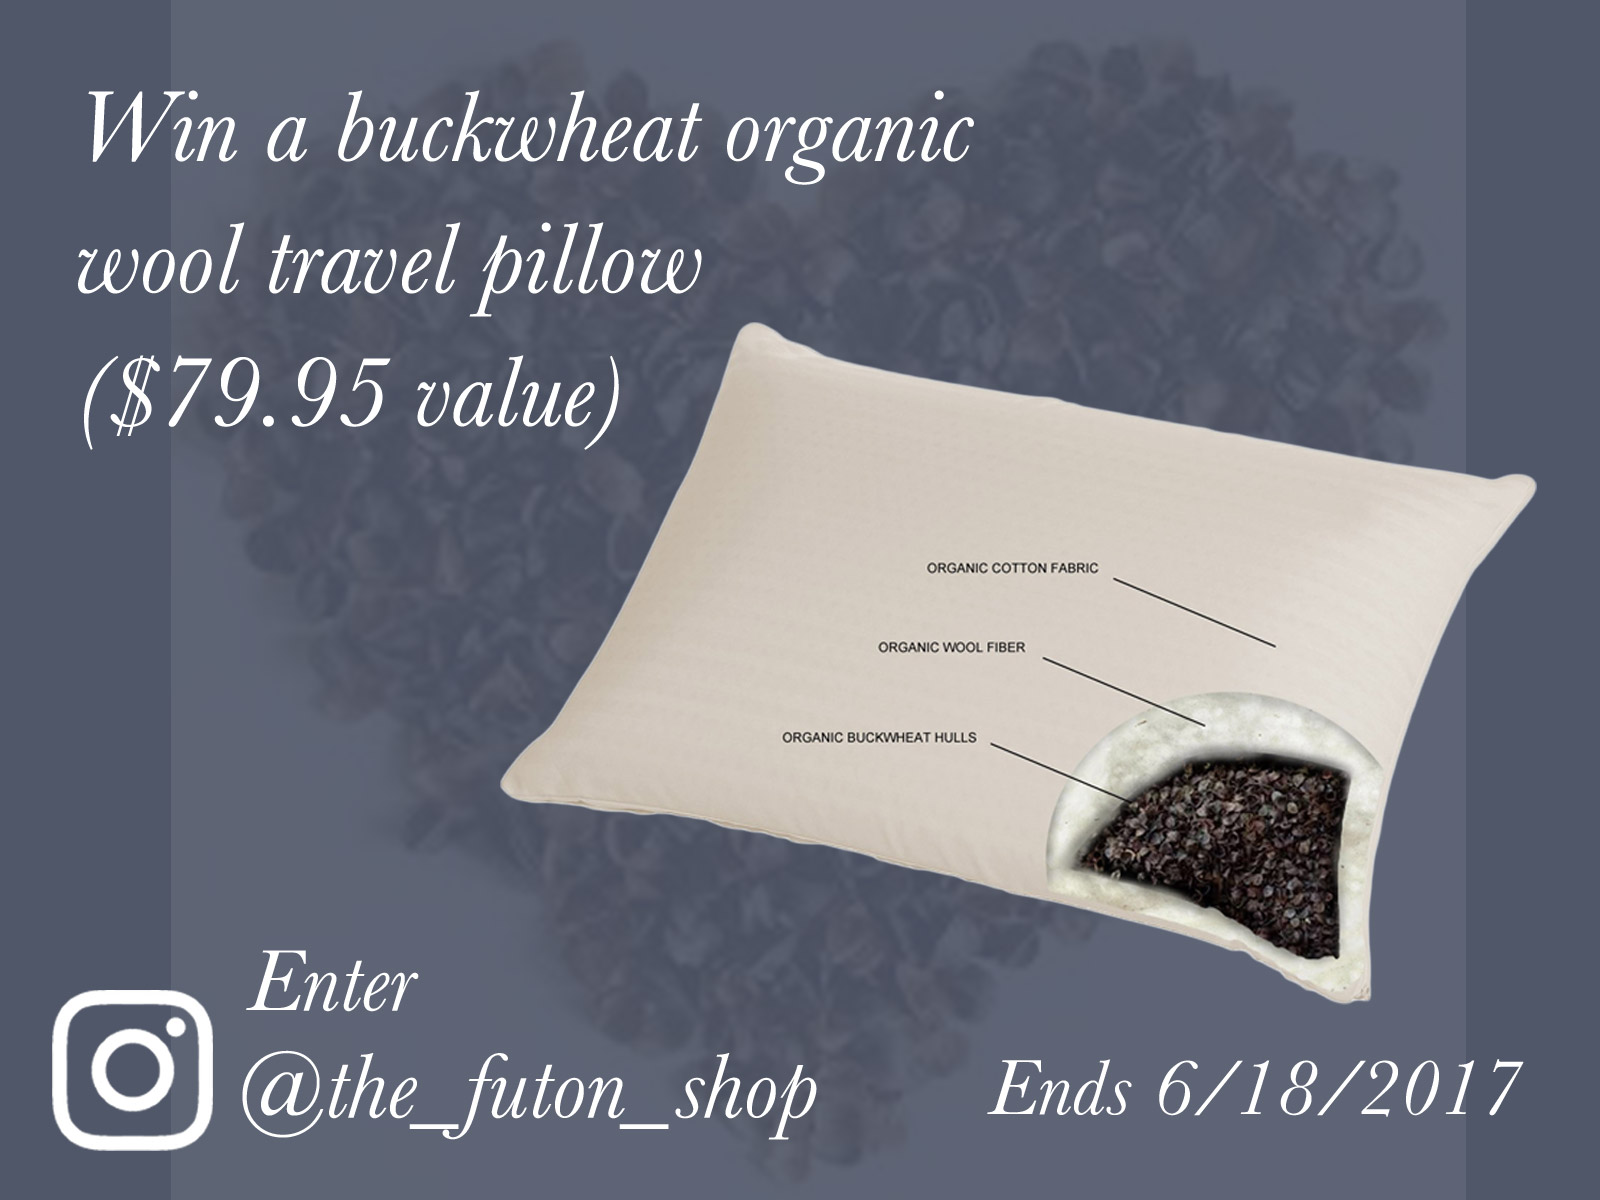 The Futon Shop's Father's Day Free Travel Size Buckwheat Organic Wool Pillow Giveaway